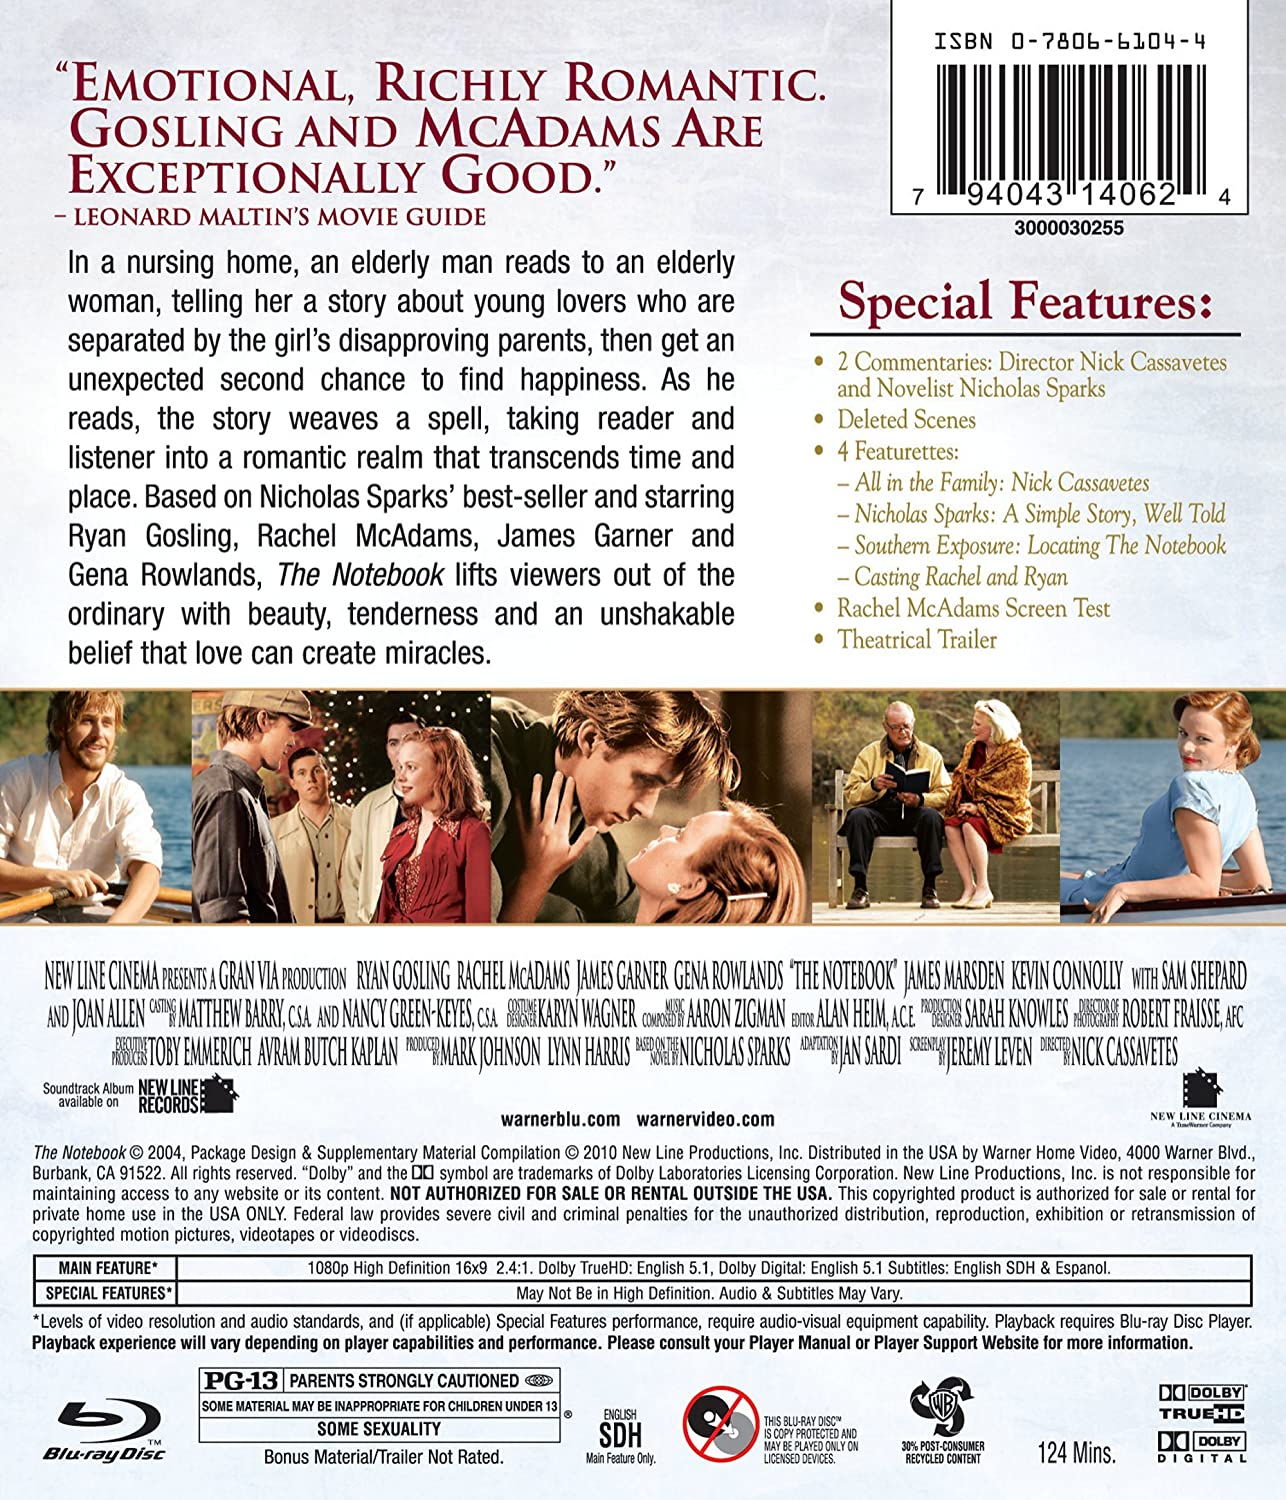 com the notebook blu ray ryan gosling rachel mcadams com the notebook blu ray ryan gosling rachel mcadams james garner gena rowlands james marsden kevin connolly david thornton